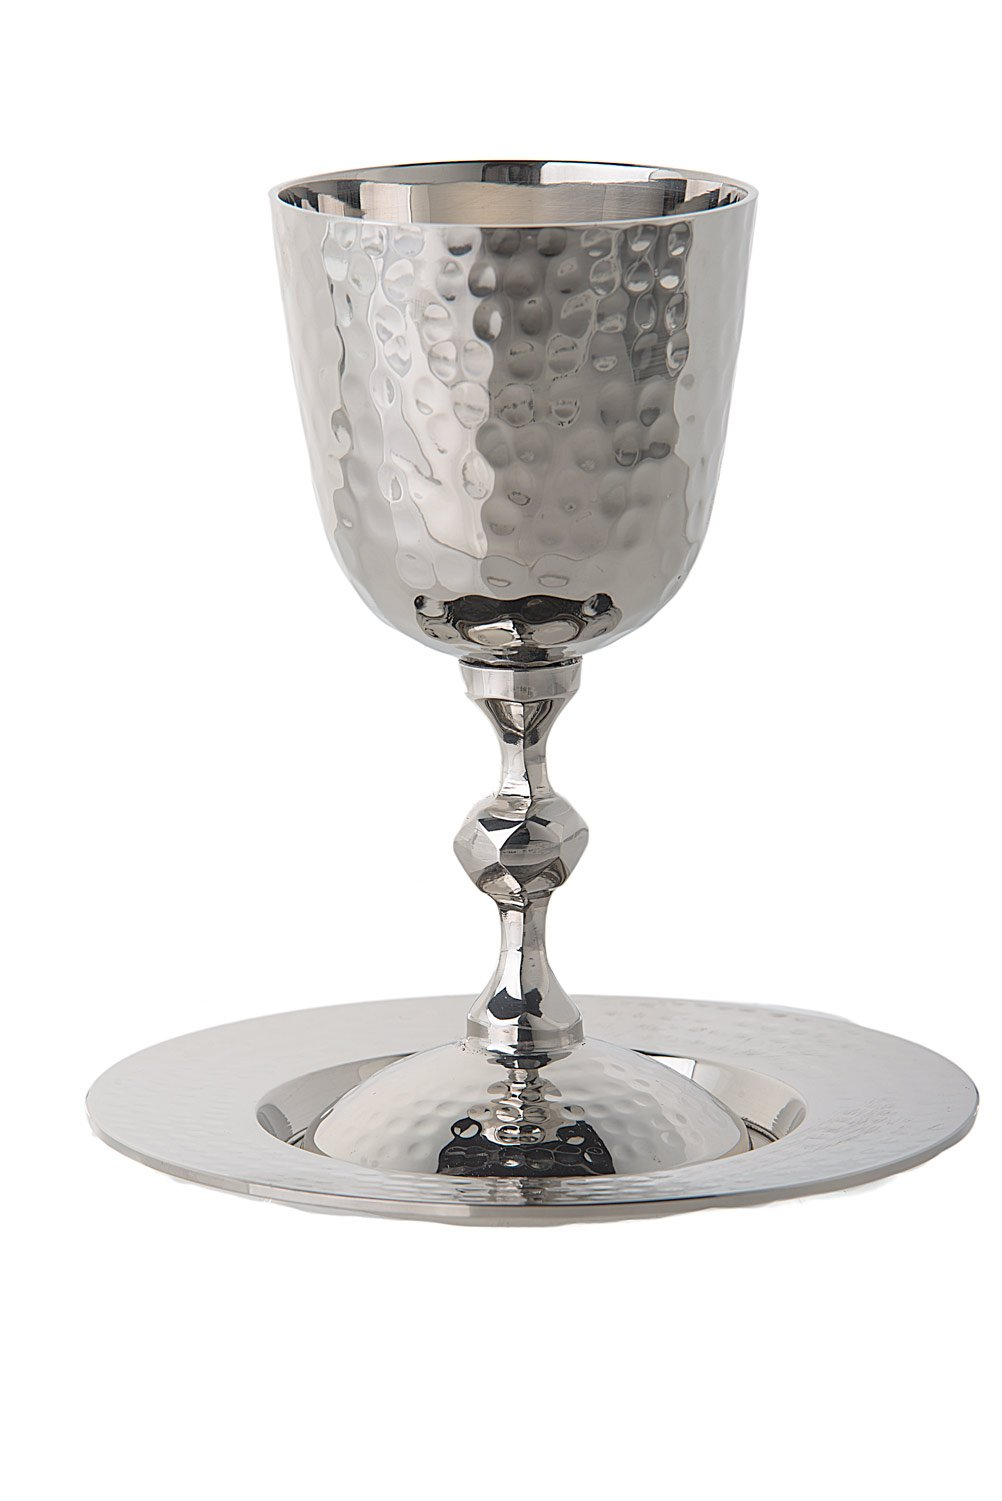 Amazon Com Magnificent Hammered Stainless Steel Kiddush Cup On Base With Matching Tray Kitchen Dining